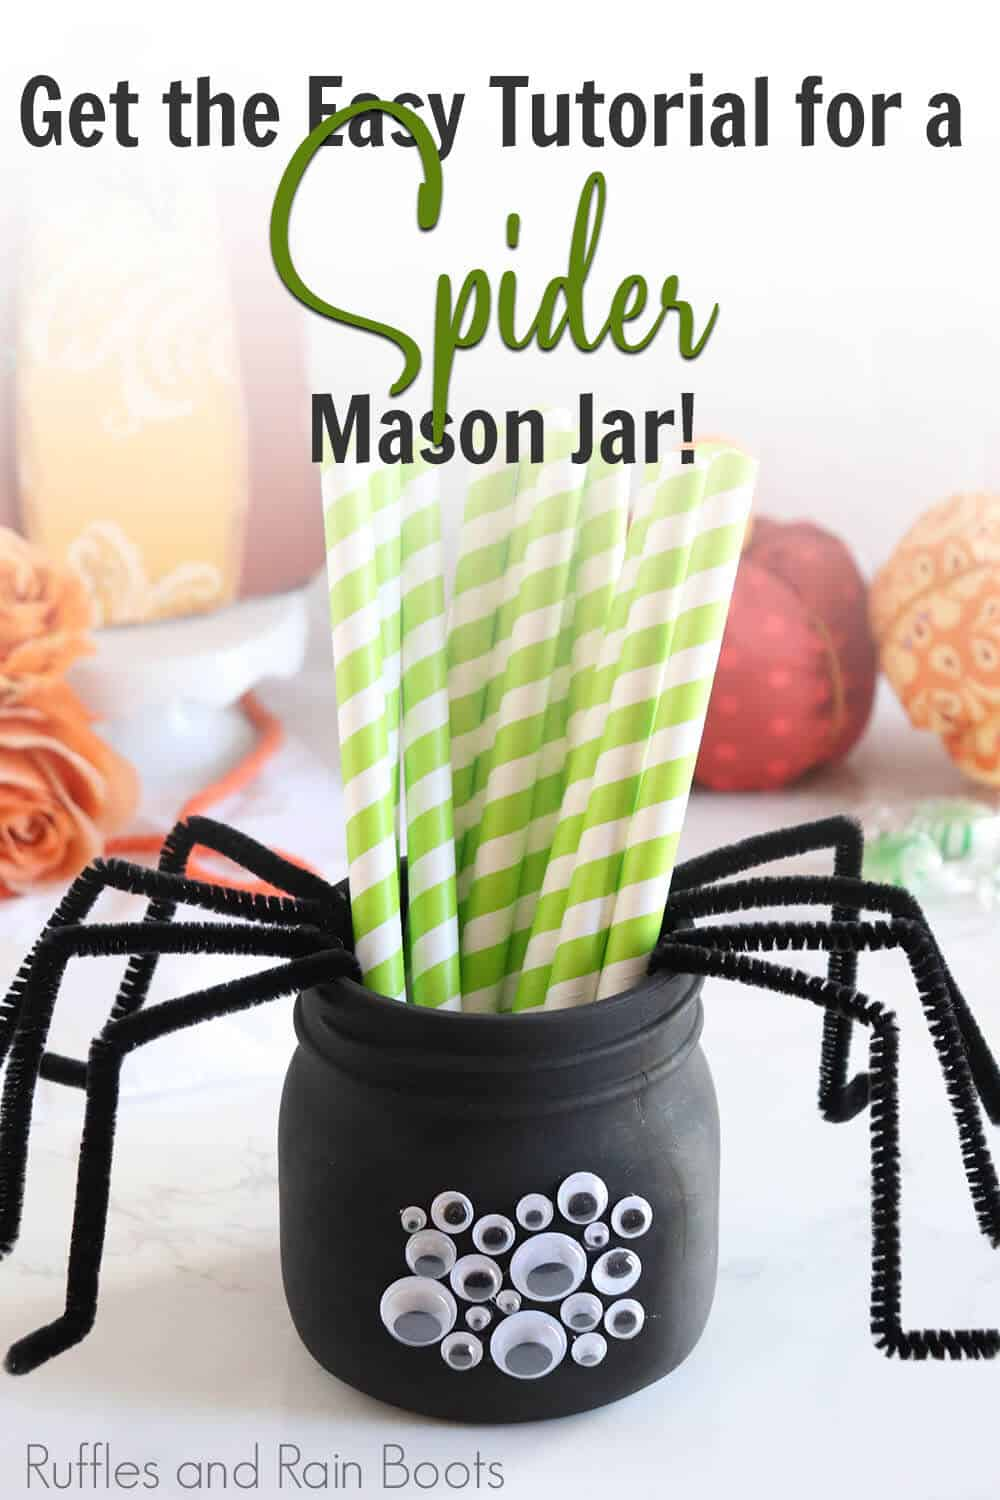 Spider mason jar craft for kids with text which reads get the easy tutorial for a spider mason jar!